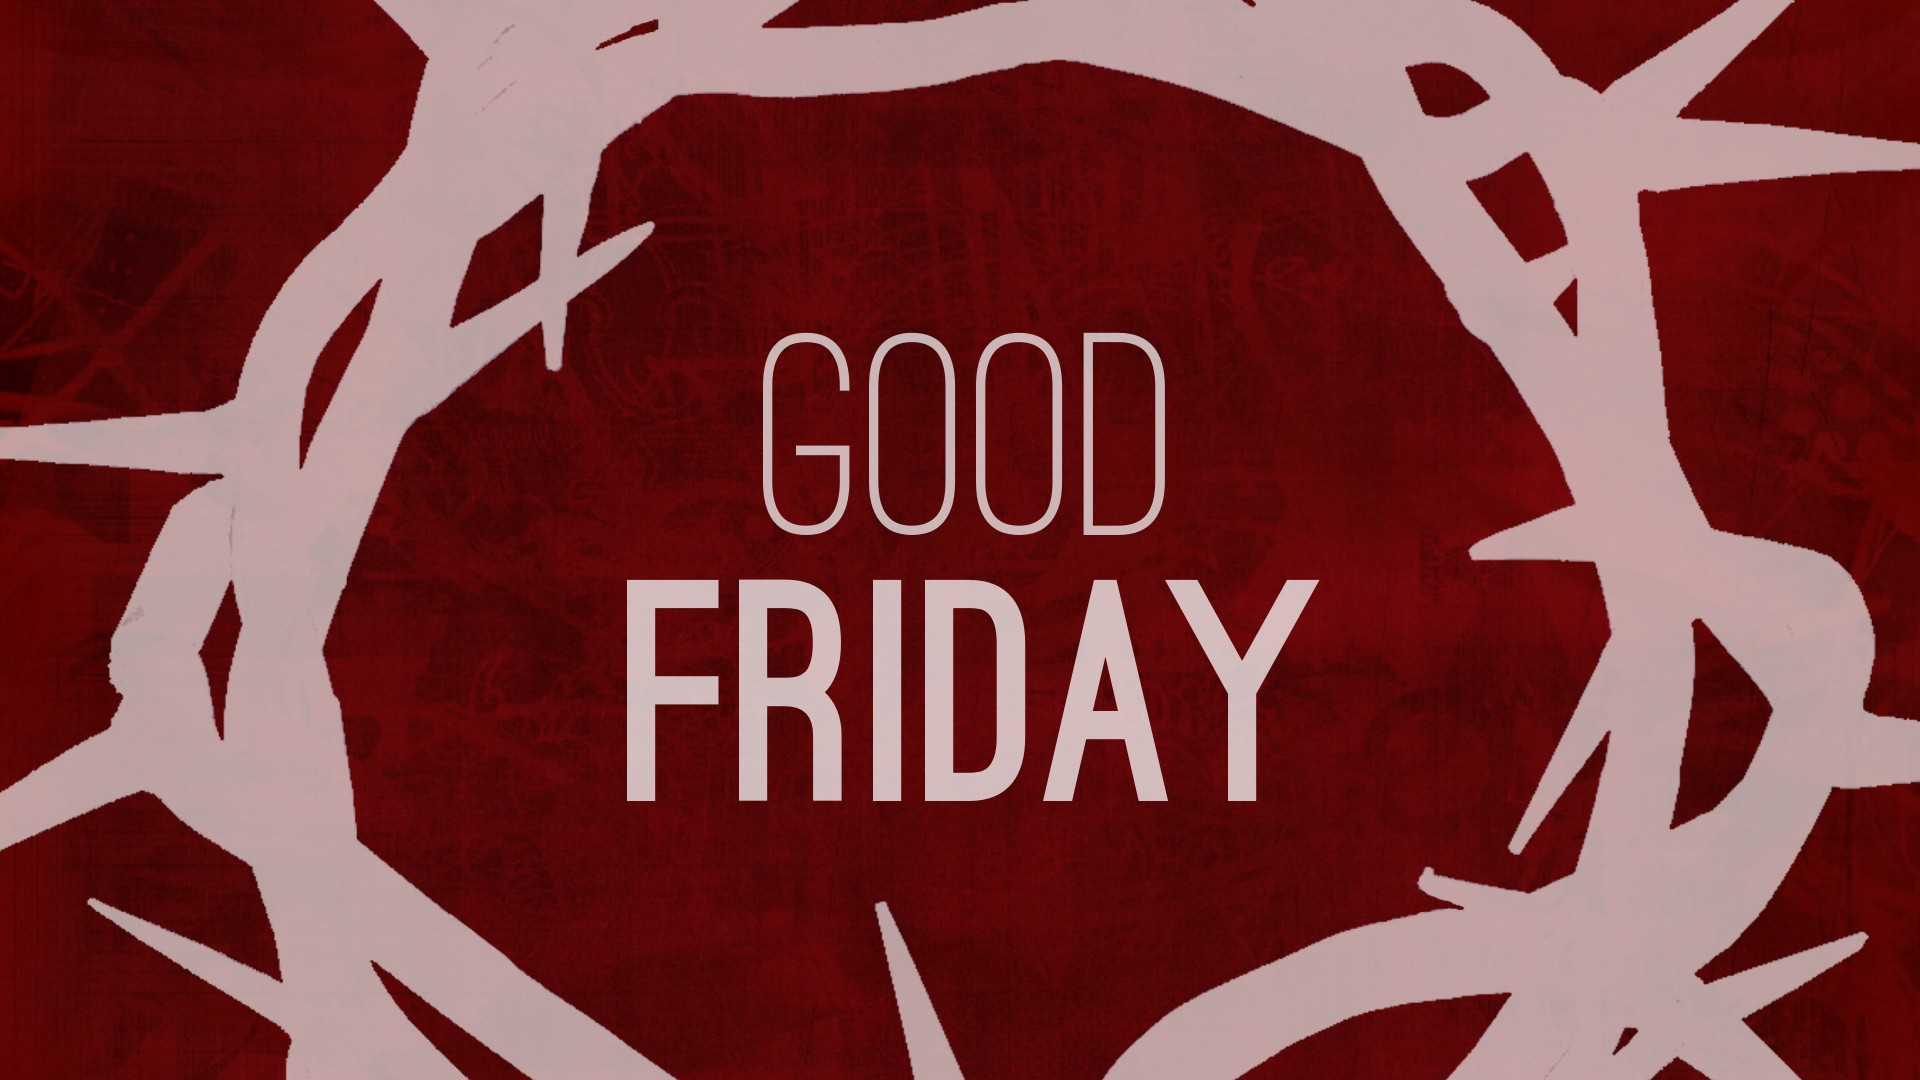 Good Friday Wallpaper free download